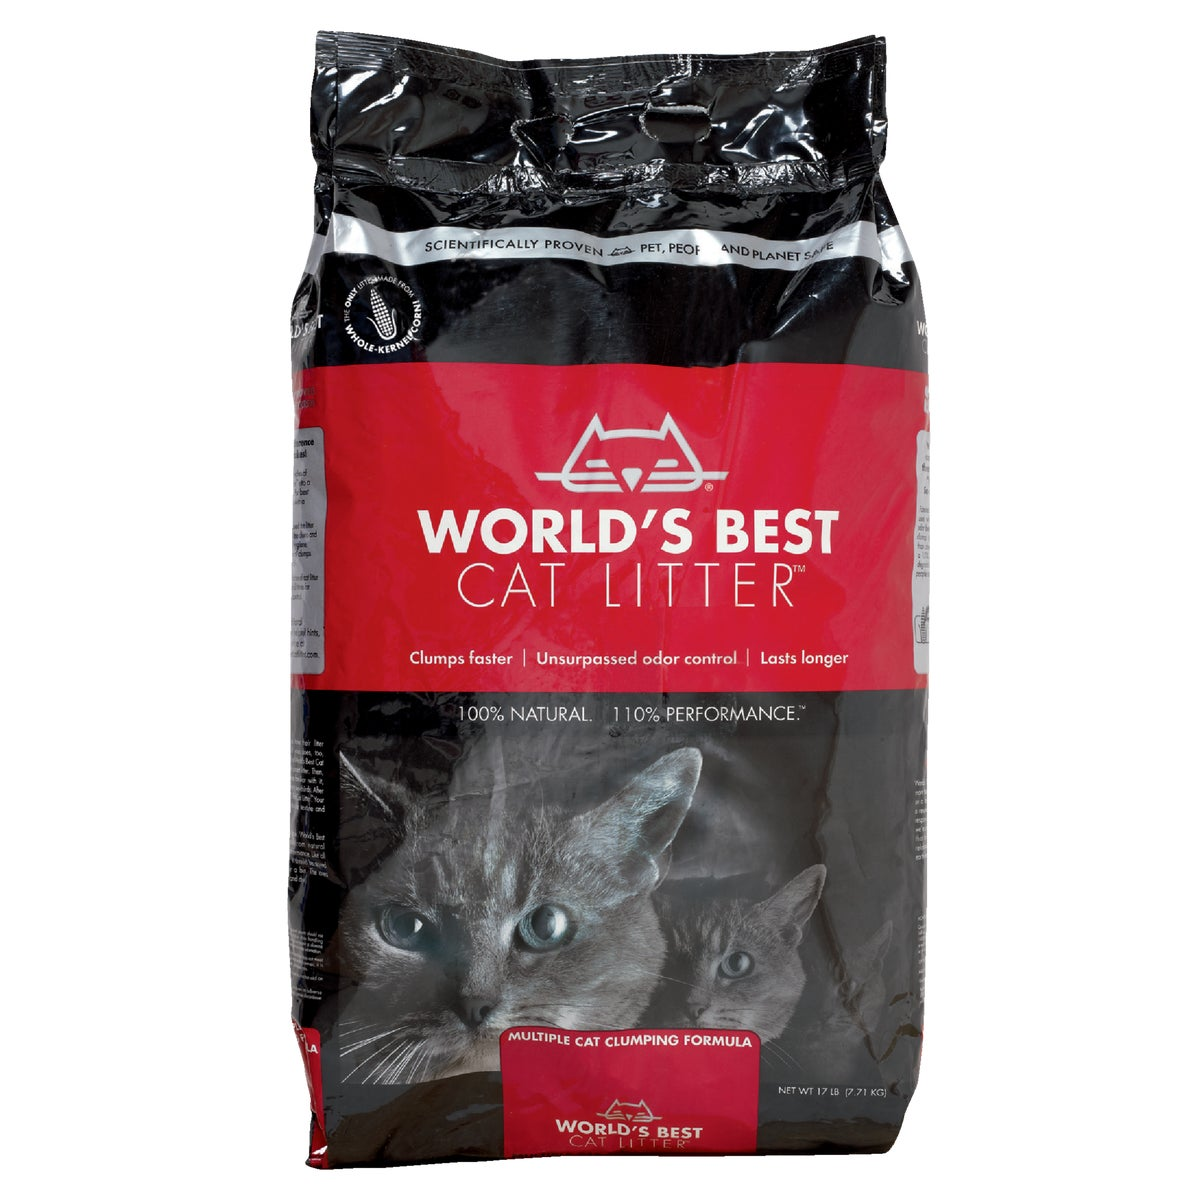 14LB WRLD BST CAT LITTER - 8054 by Kent Feeds Inc